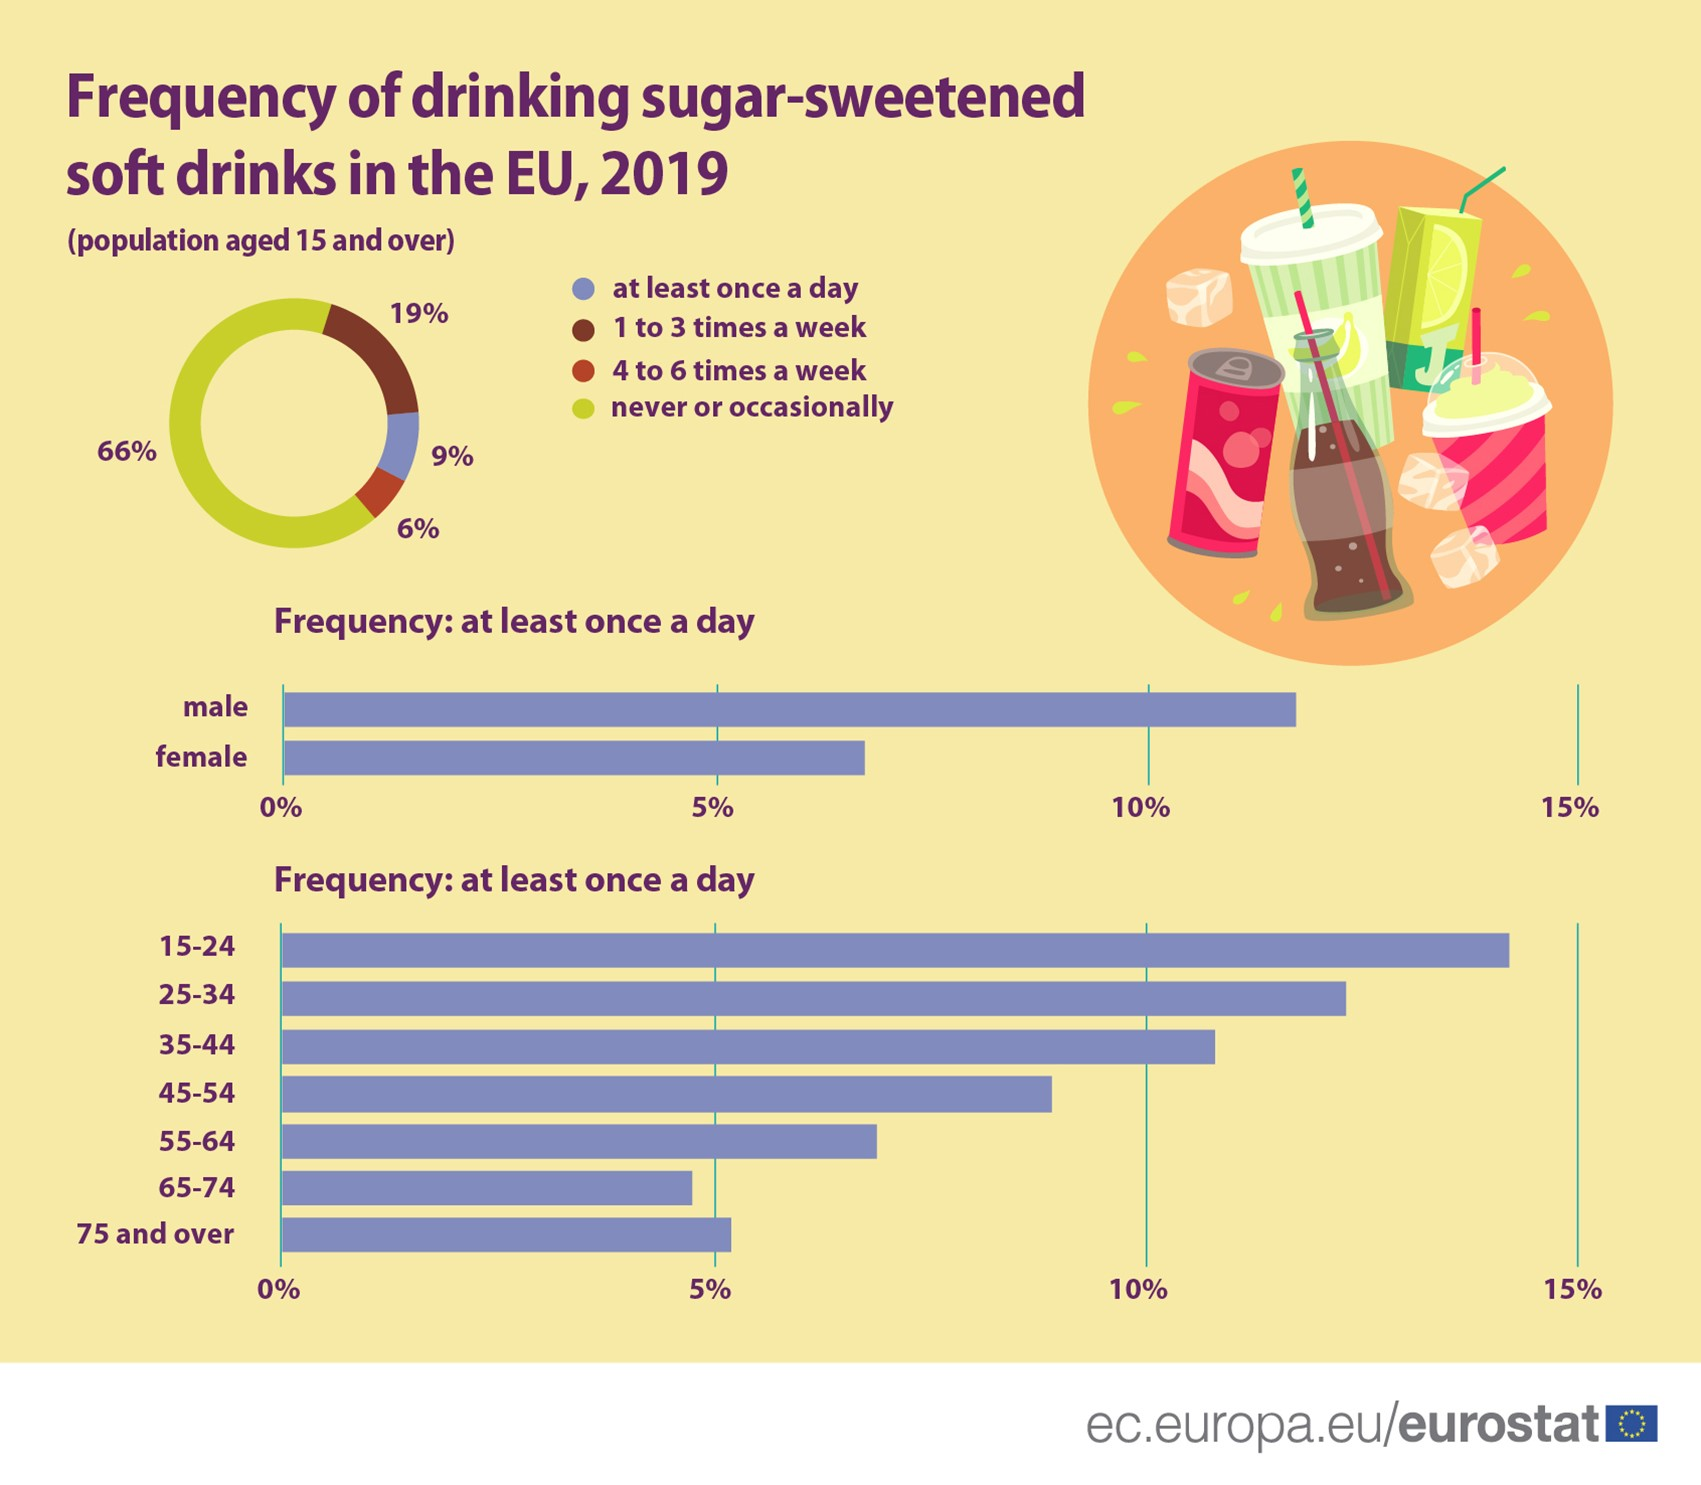 Bar chart: Frequency of drinking sugar-sweetened soft drinks in the EU, by frequency, age and sex, 2019, population aged 15 and over